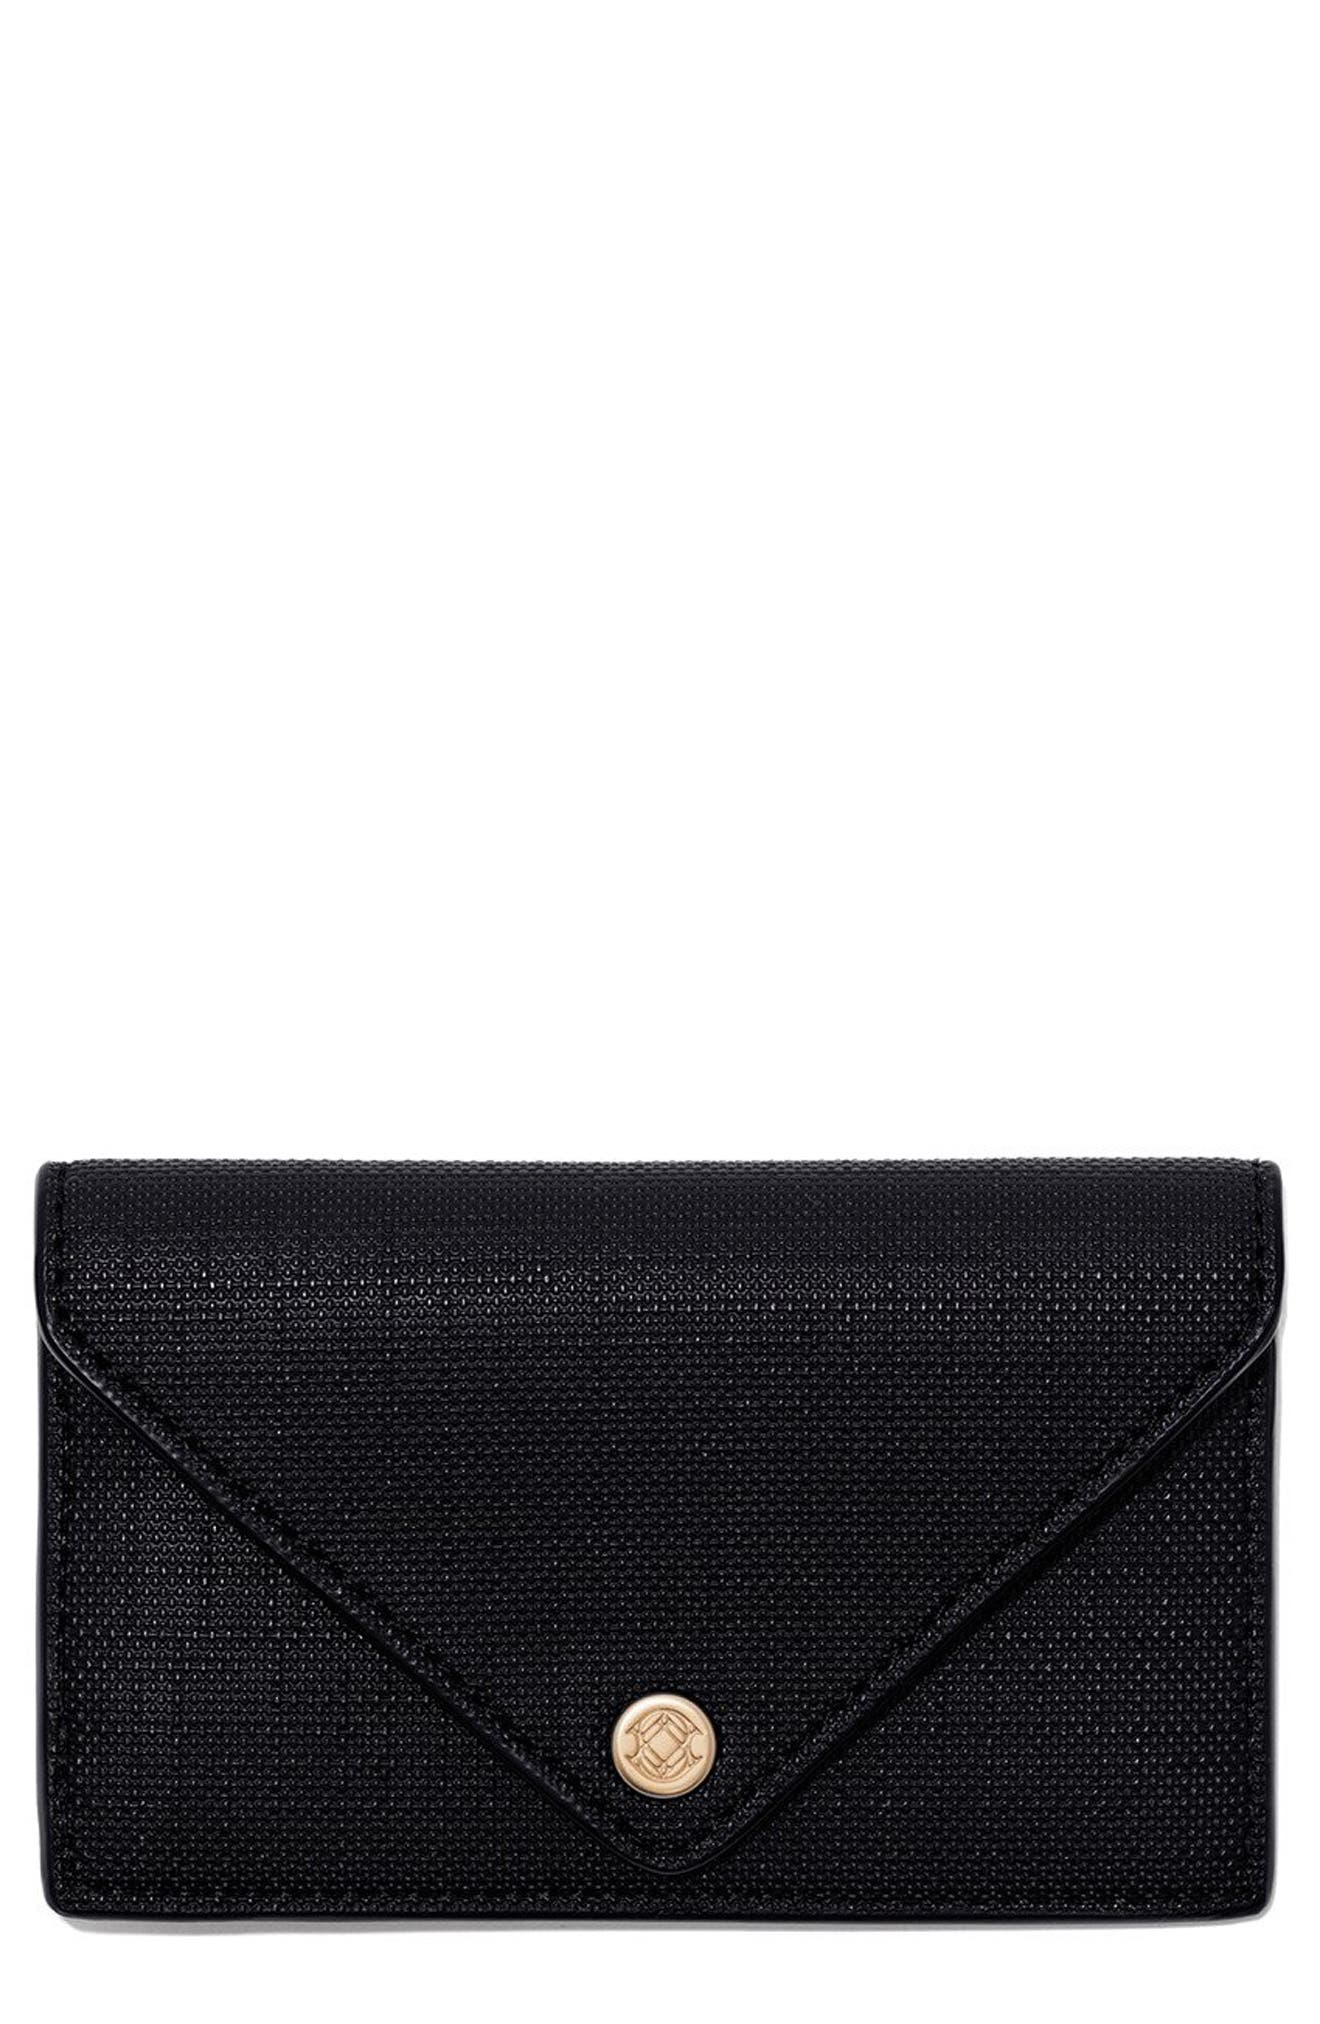 DAGNE DOVER Coated Canvas Card Case, Main, color, ONYX